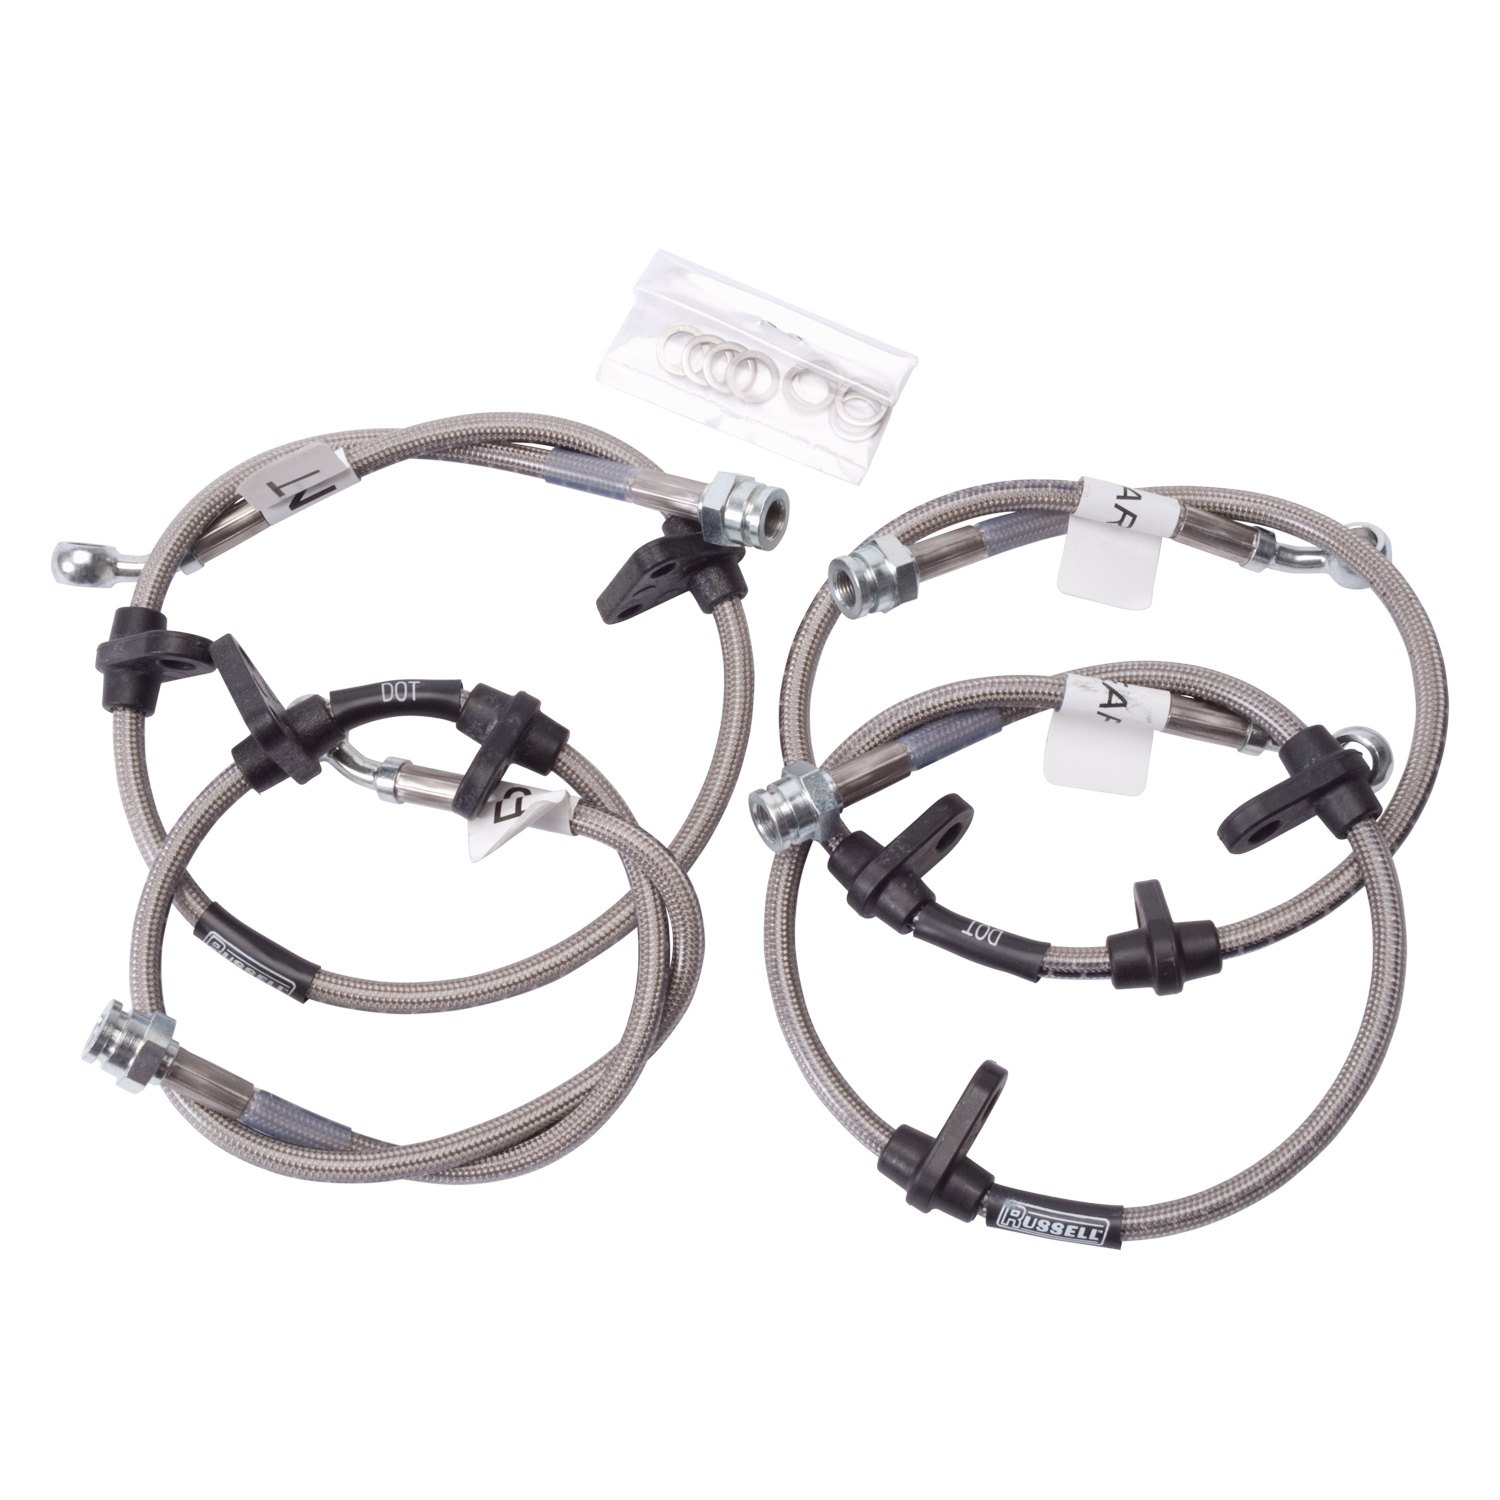 For Honda Crx 90 91 Russell Braided Stainless Steel